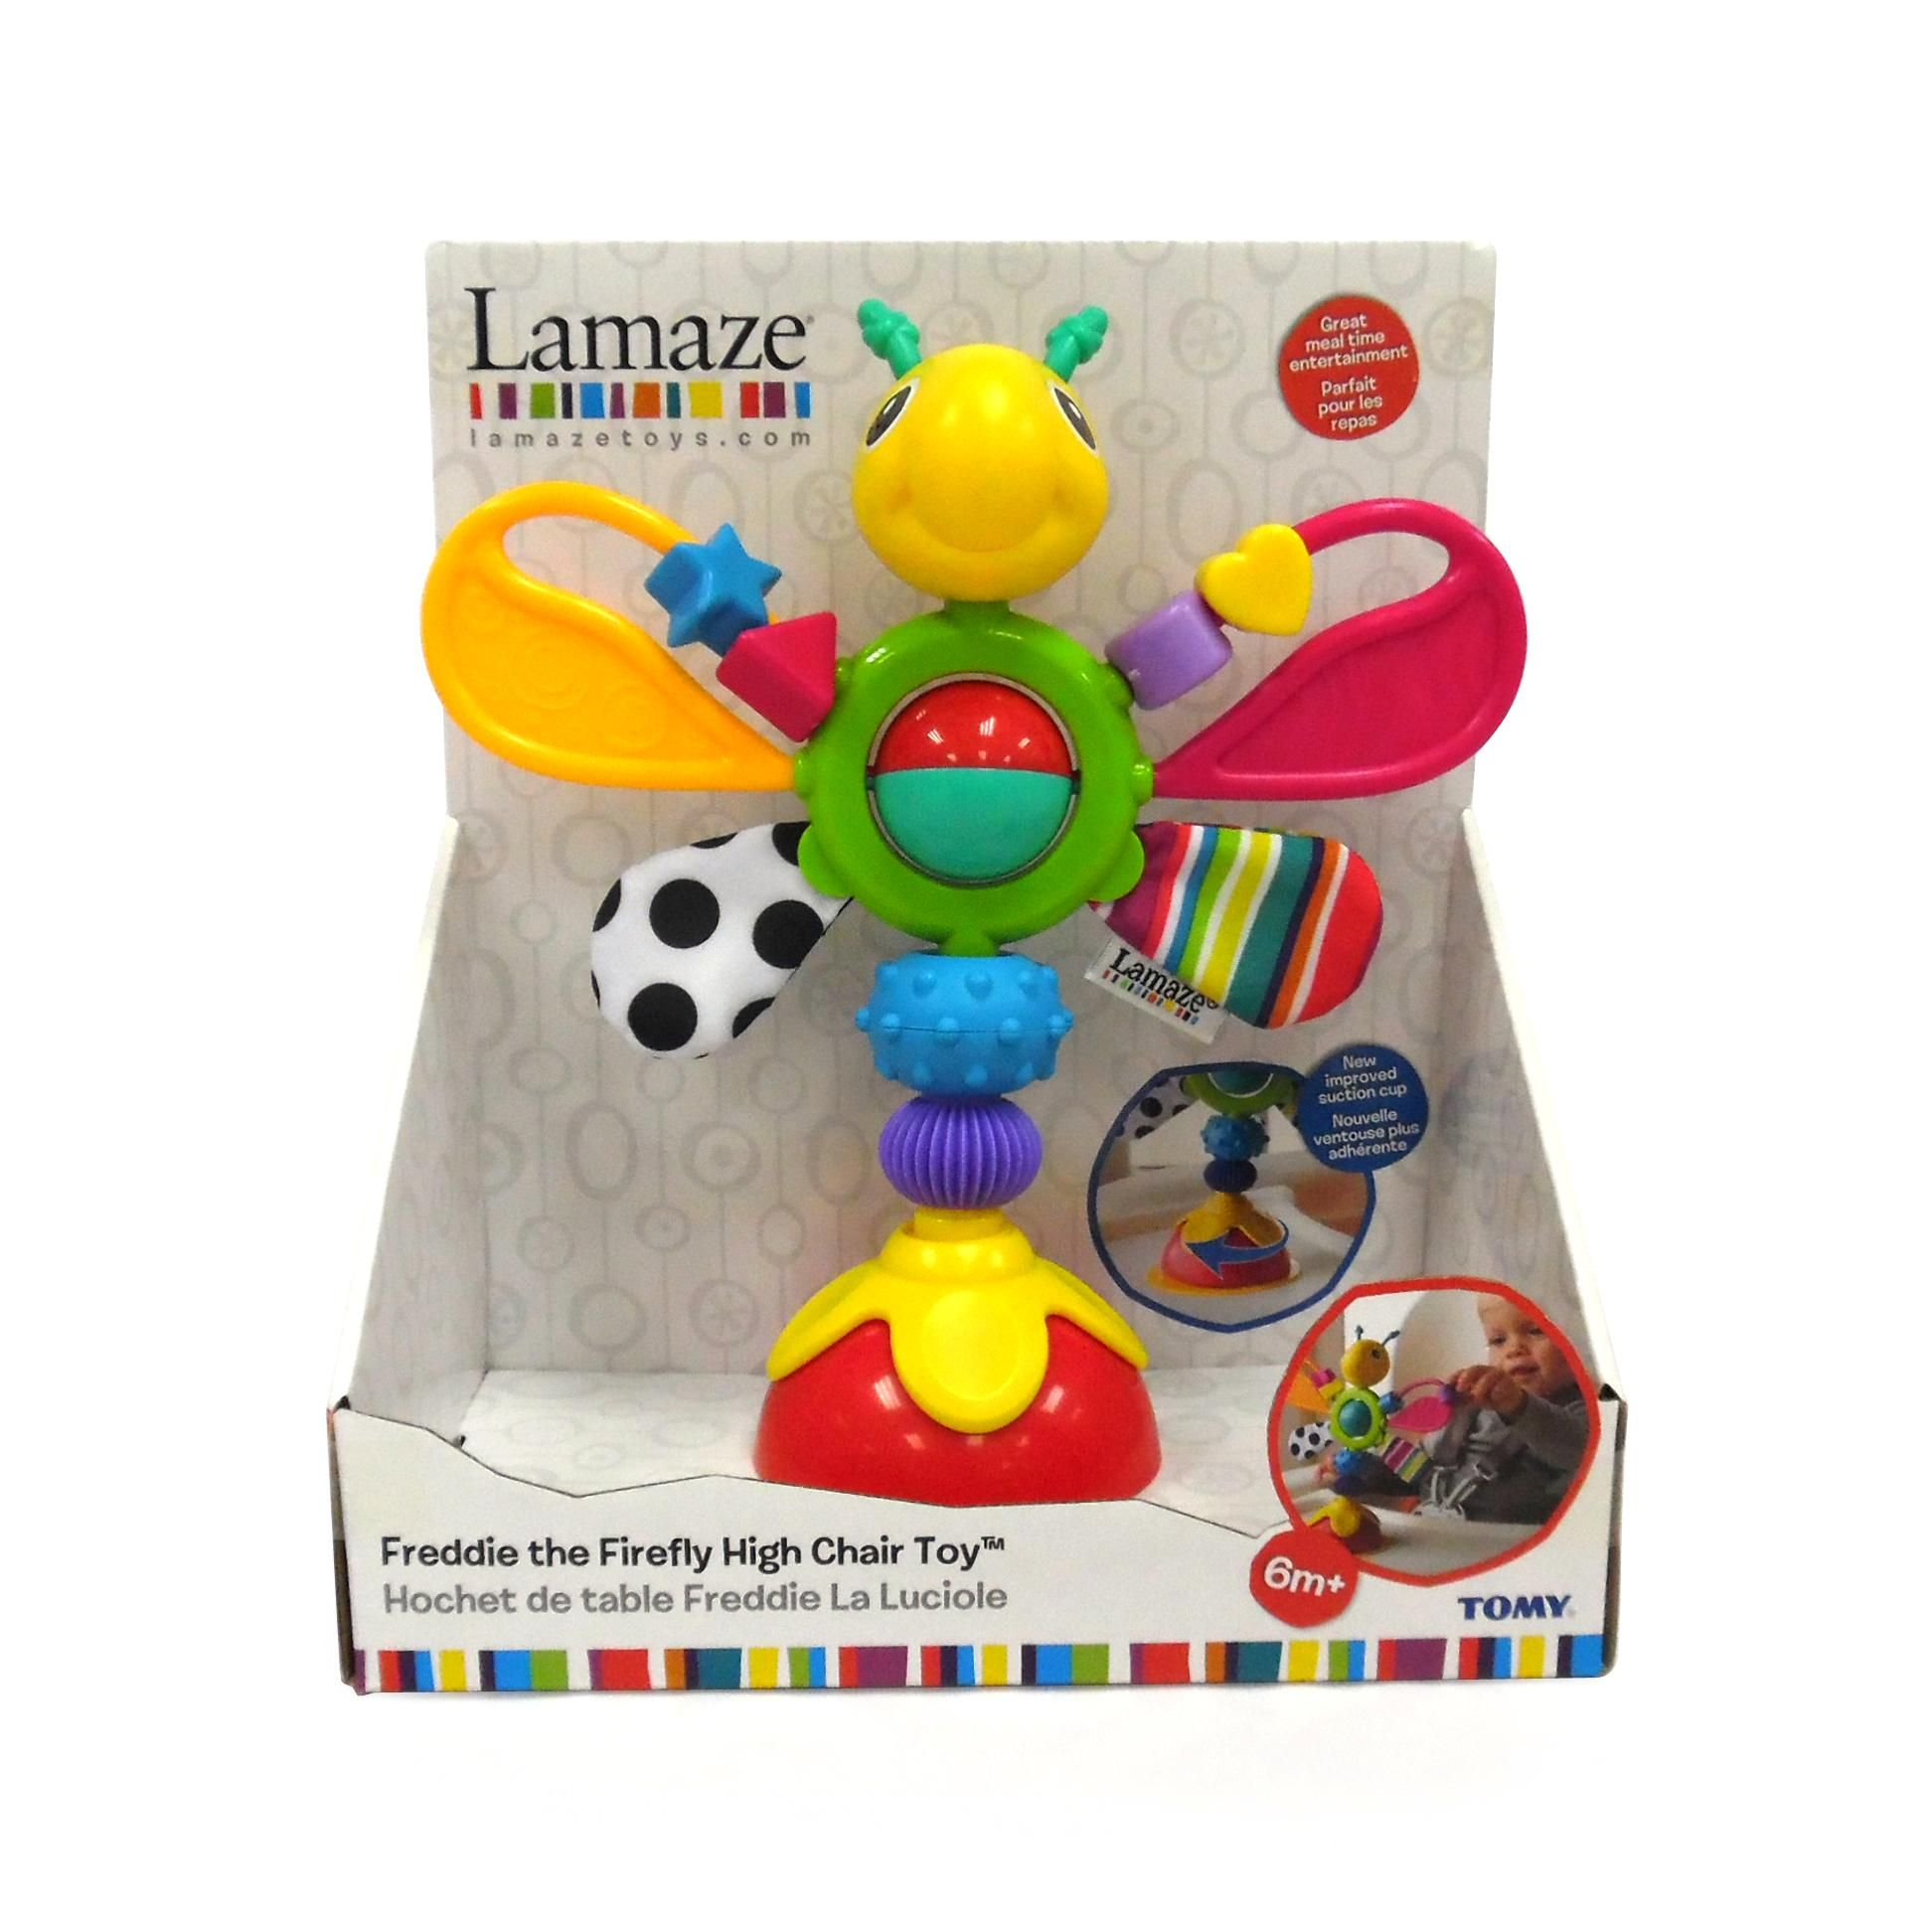 Keep Baby Entertained At The Dinner Table With The Freddie The